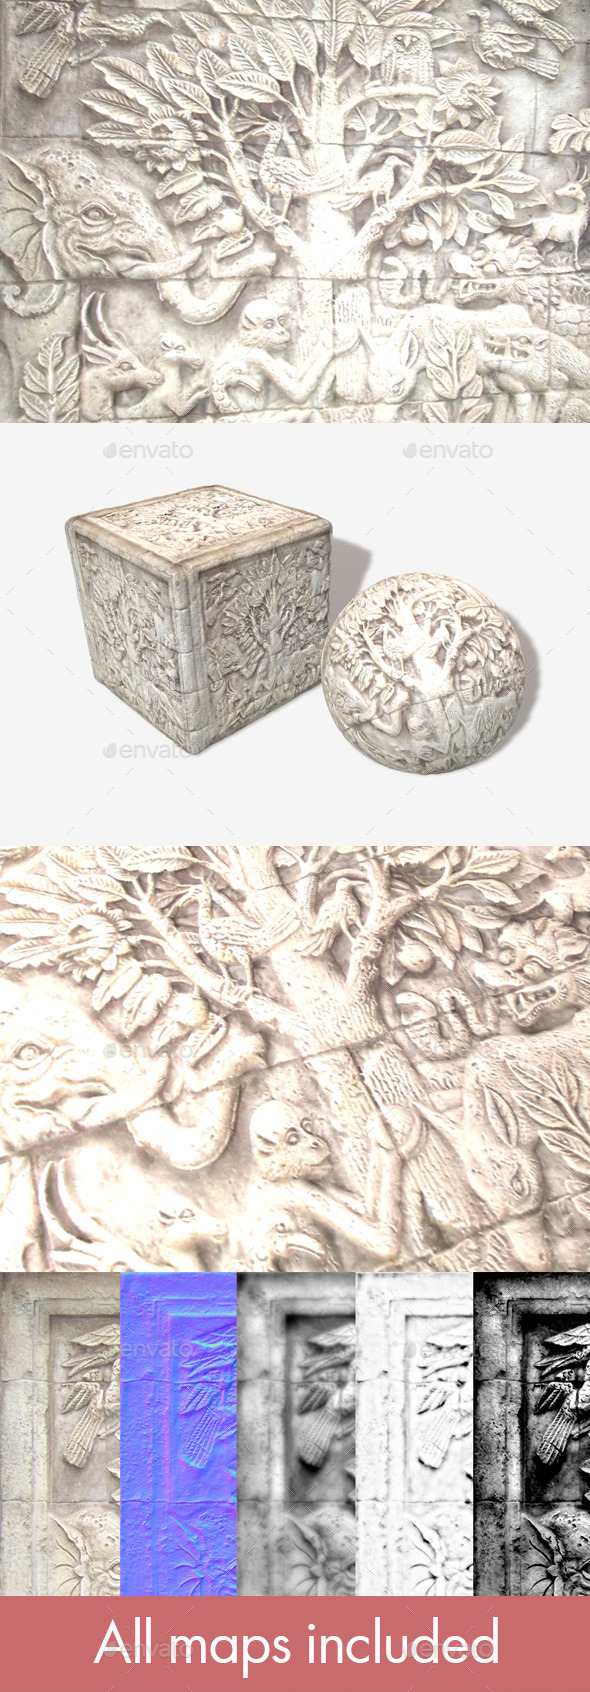 Asian Carved Stone Texture 2 - 3DOcean Item for Sale